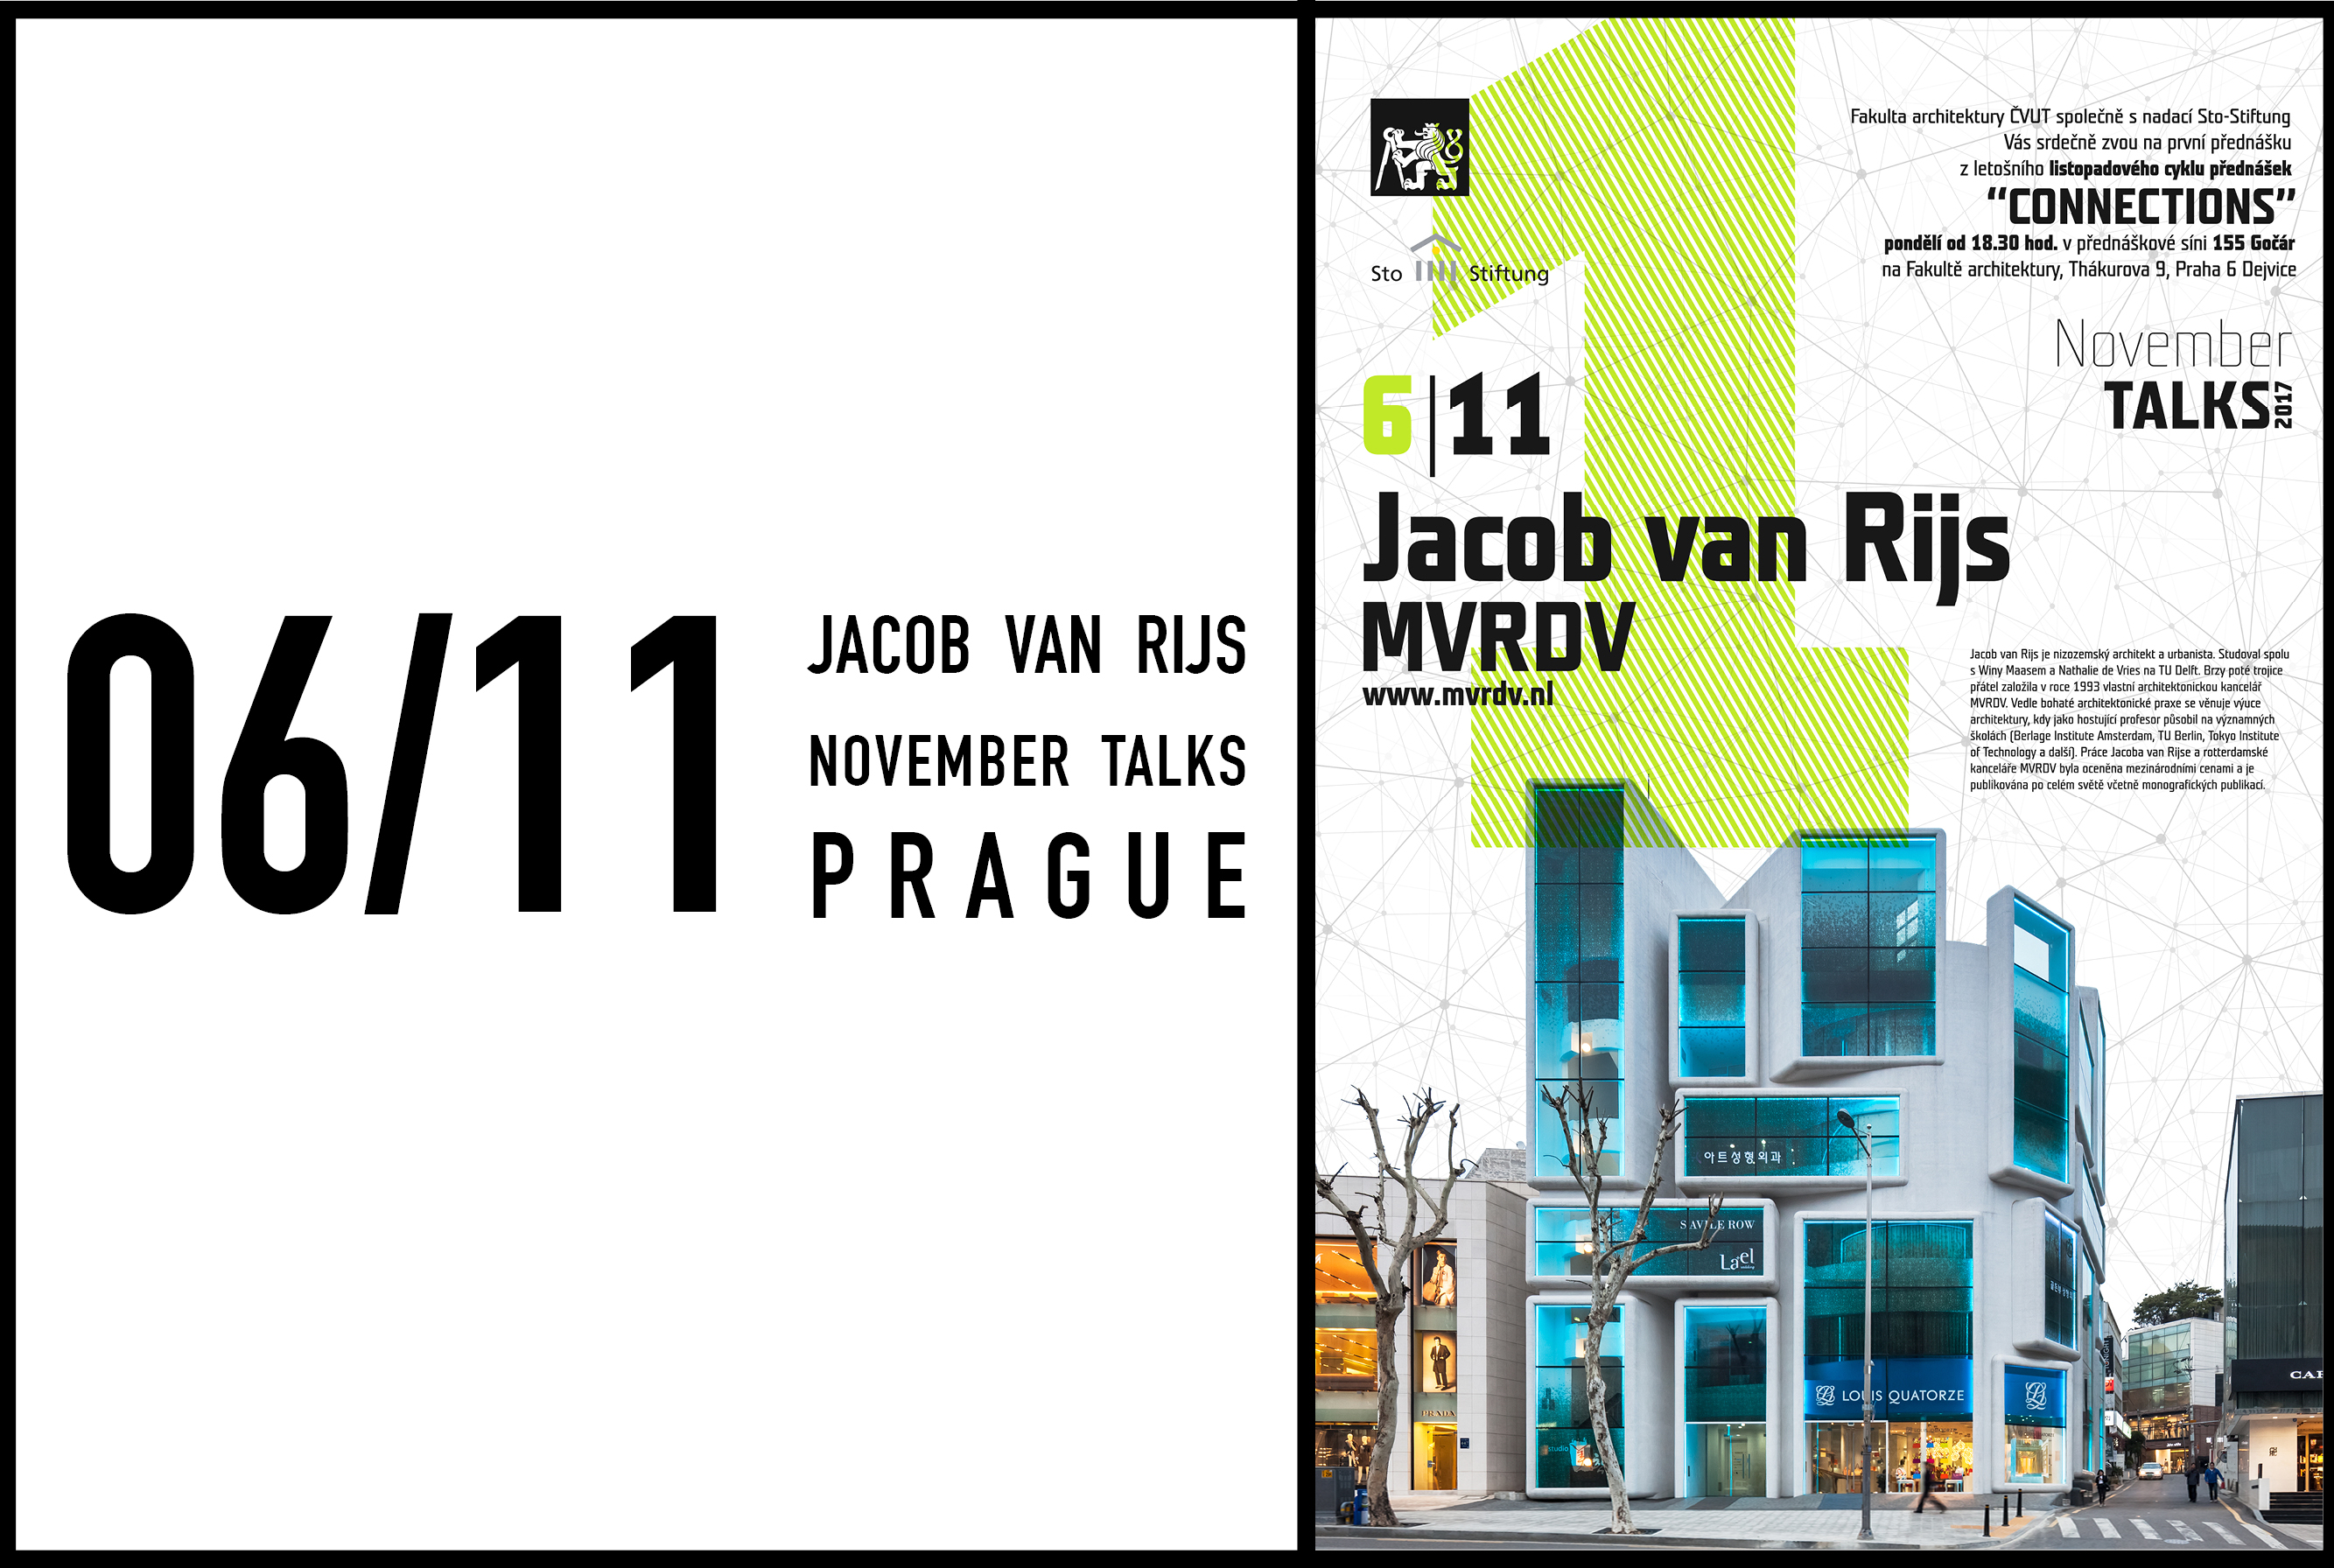 Jacob van Rijs to talk at November Reihe at Prague Technical University, November 6 2017